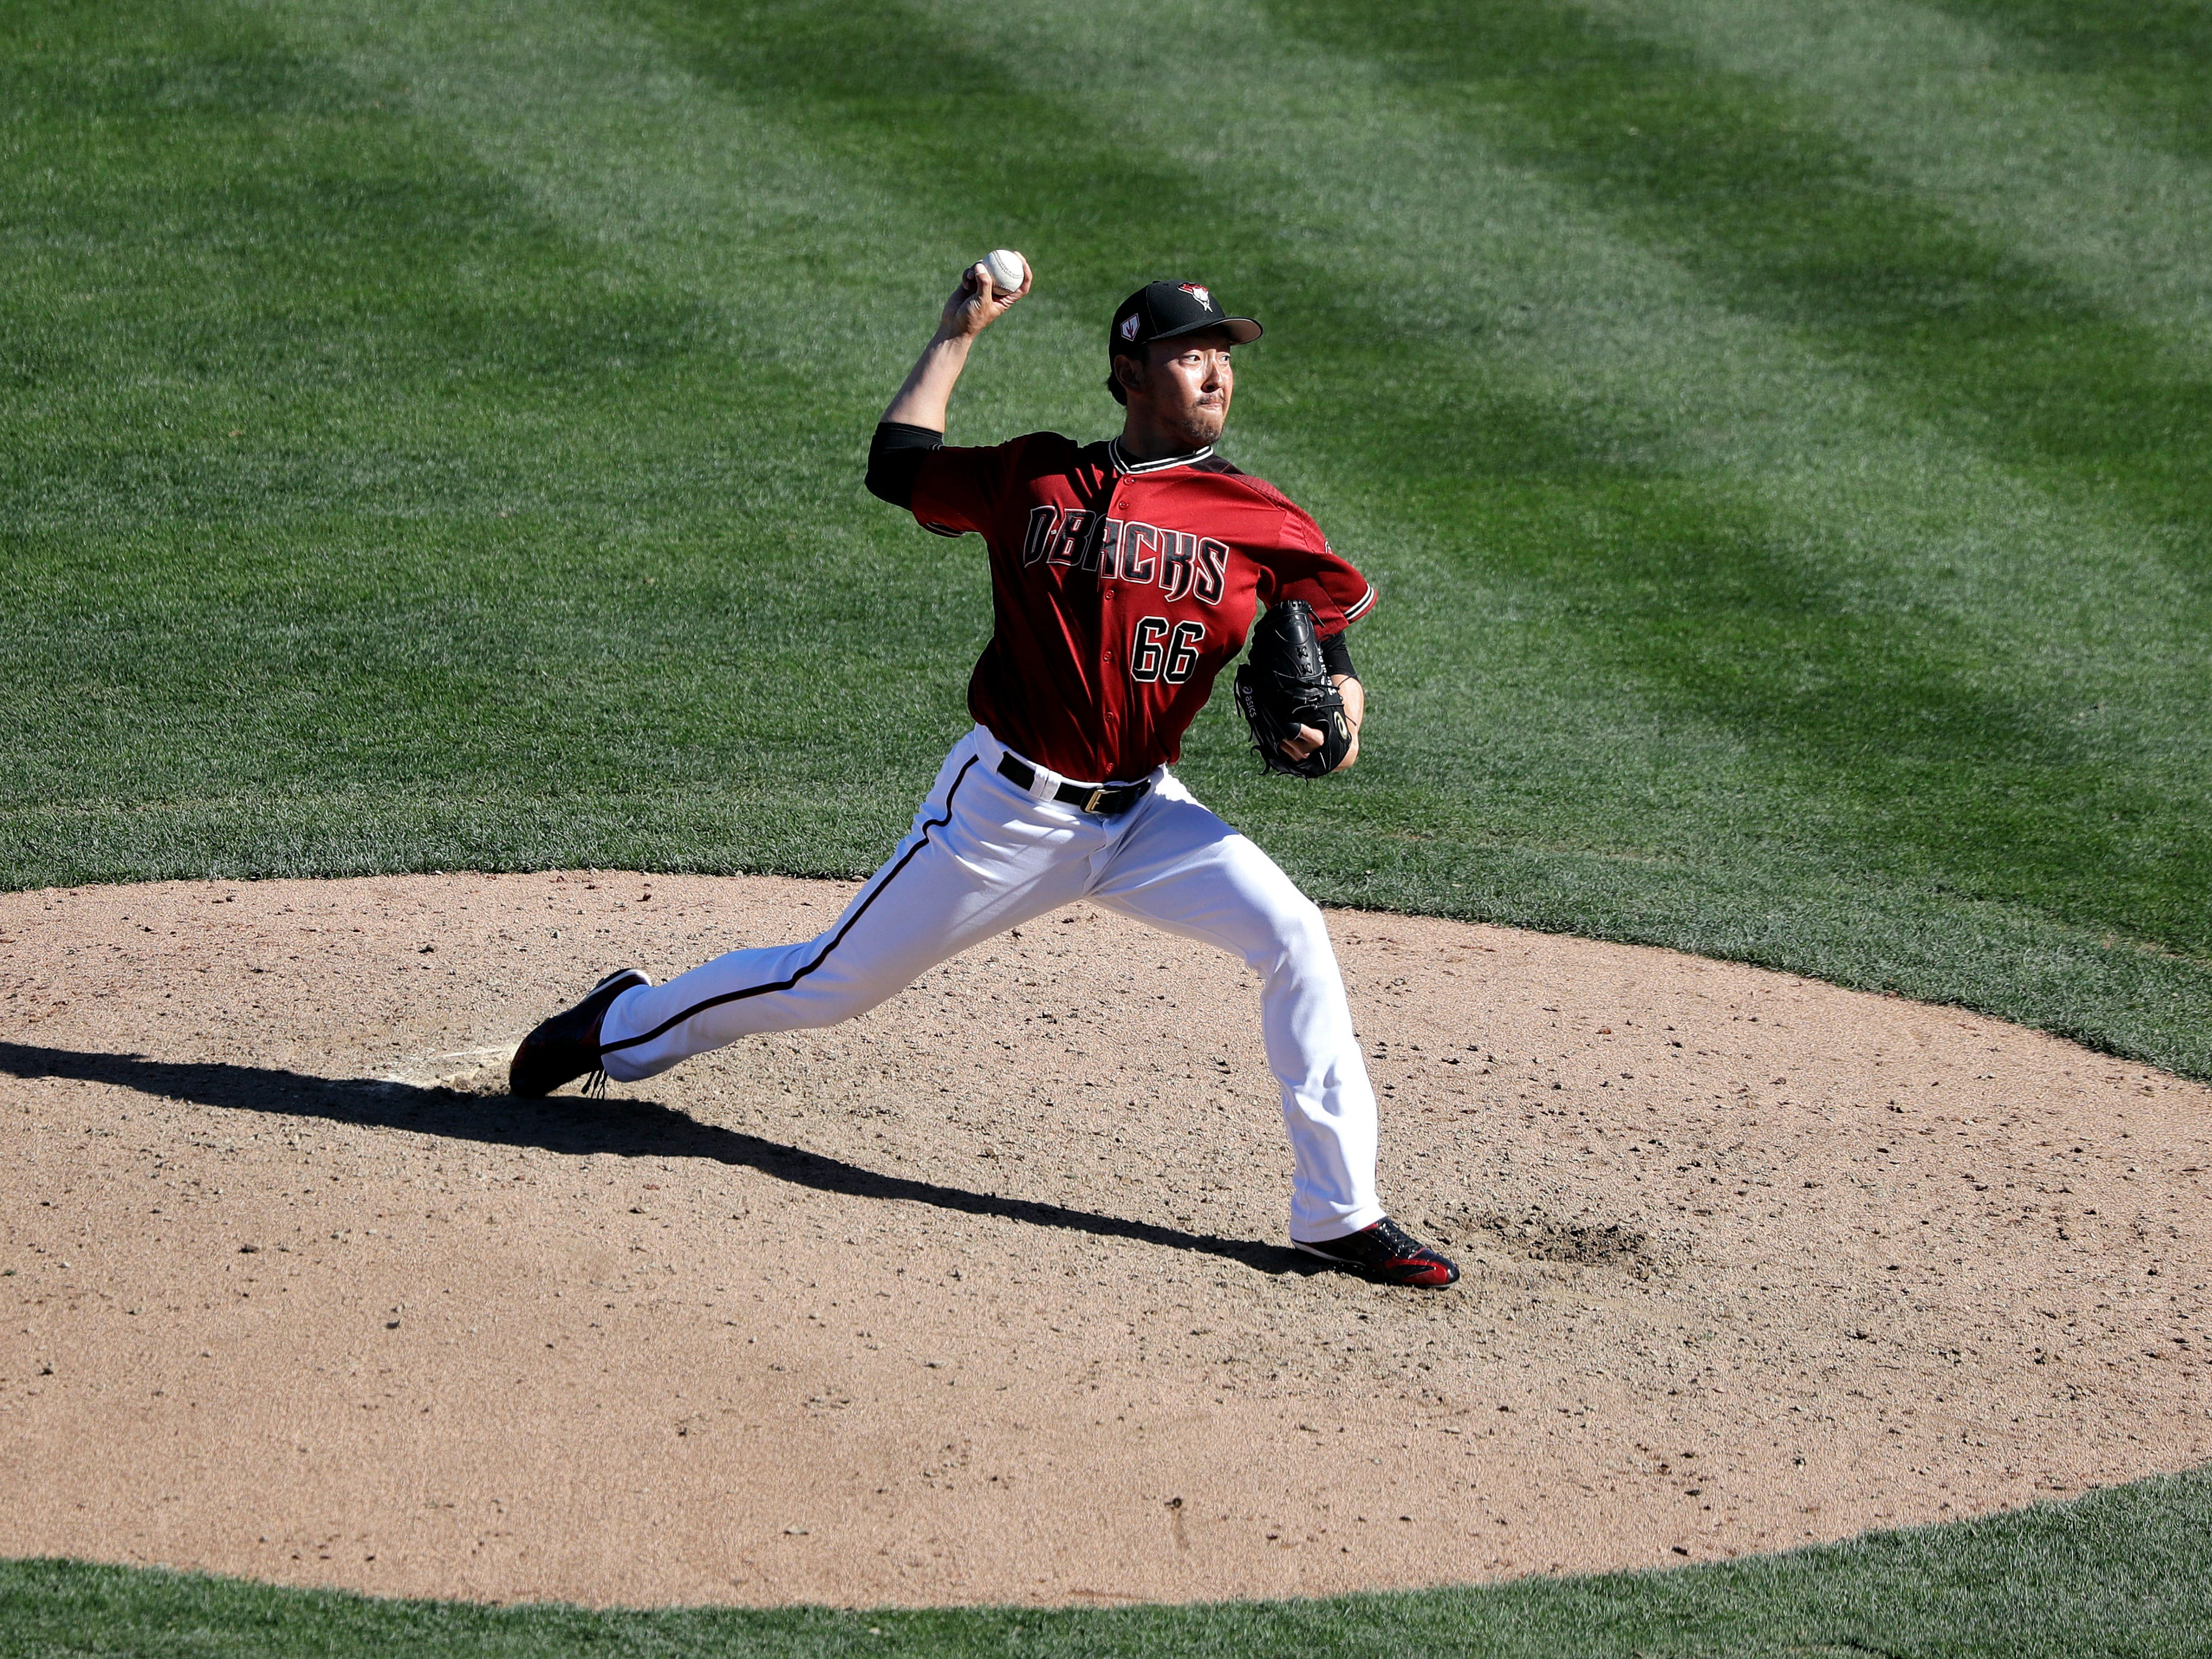 Arizona Diamondbacks relief pitcher Yoshihisa Hirano throws against the Chicago Cubs in the eighth inning of a spring training baseball game Saturday, March 16, 2019, in Scottsdale, Ariz.